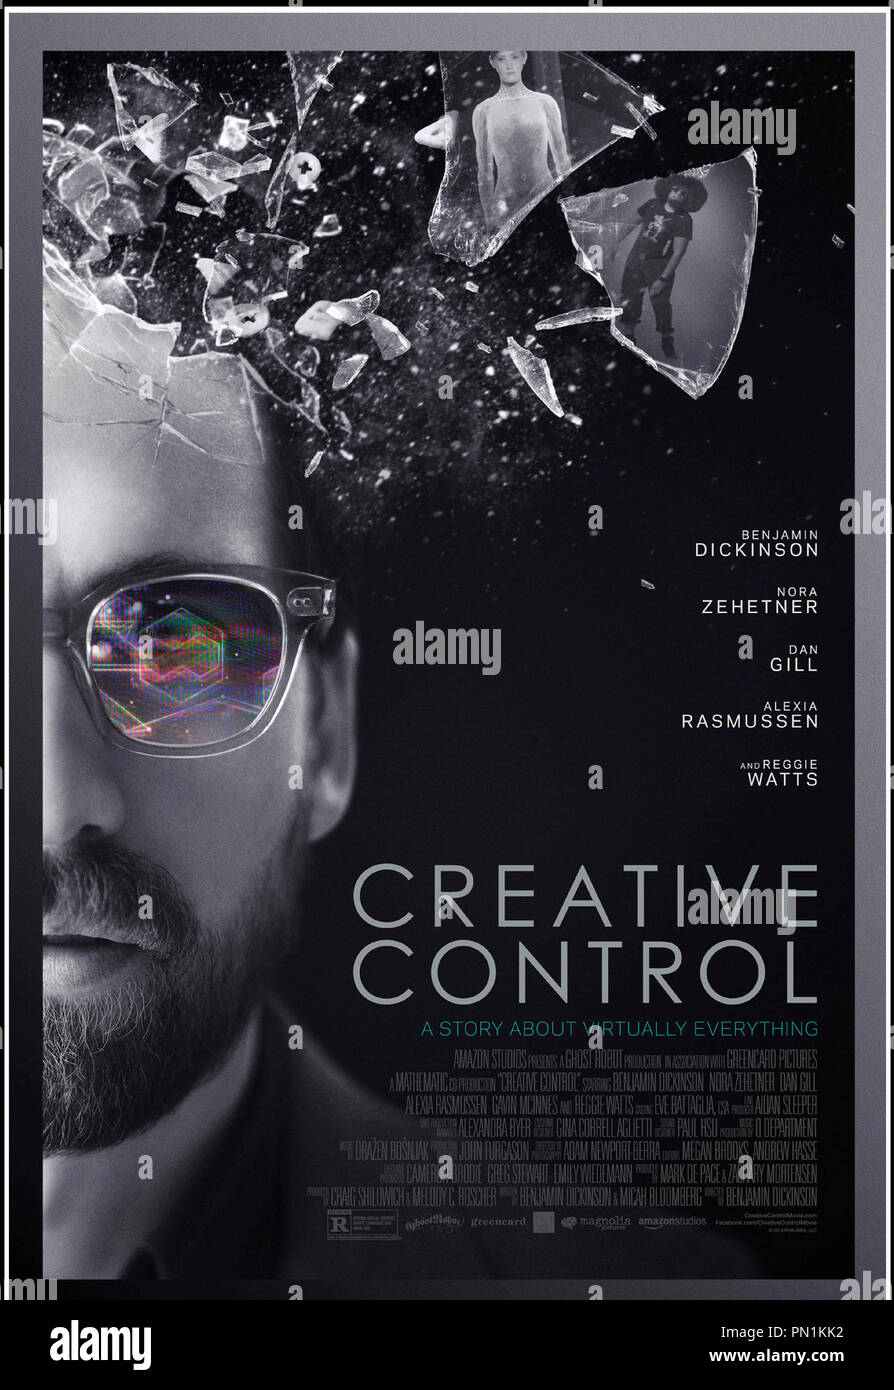 Prod DB © Ghost Robot - Greencard Pictures - Mathematic / DR CREATIVE CONTROL de Benjamin Dickinson 2015 USA affiche americaine science fiction - Stock Image